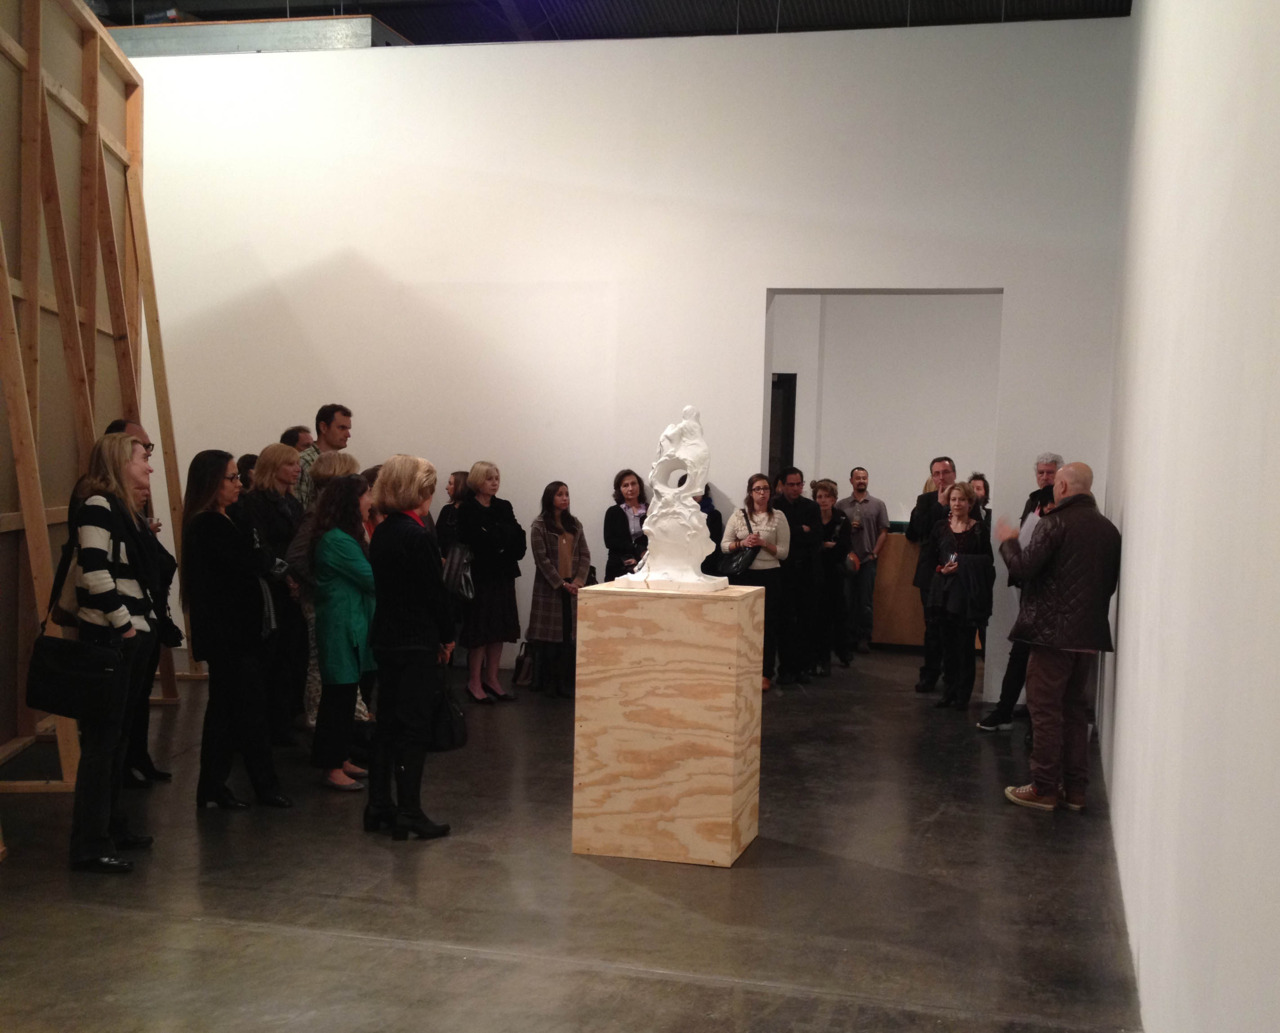 """Izhar Patkin speaks about his solo exhibition """"The Dead Are Here."""" (Jan 7 - Feb 18, 2012) at an Artis Artist Talk & Reception last night. Thank you to all who attended!"""